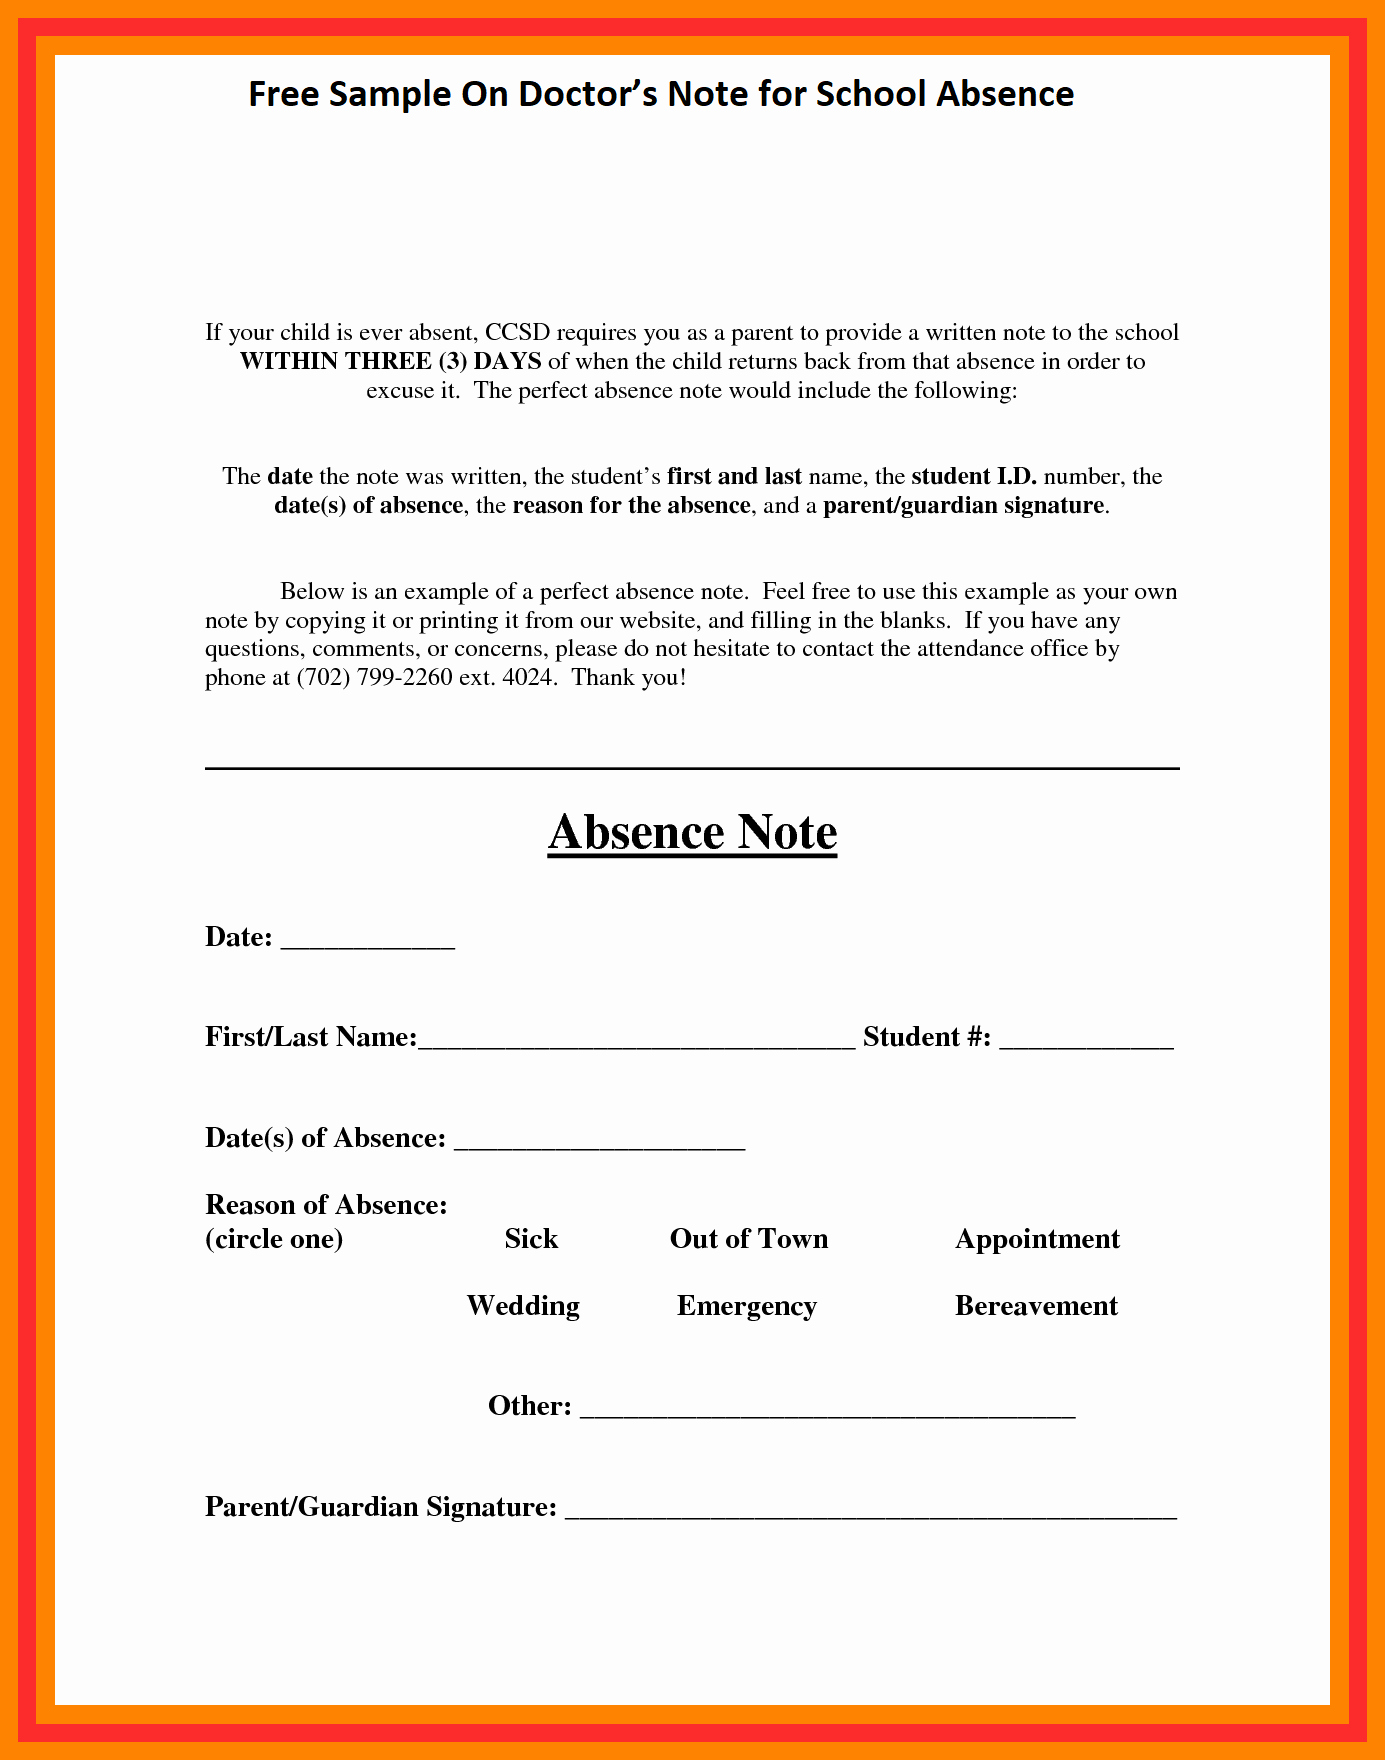 Absence Note for School Examples Unique Free Sample Doctor S Note for School Absence